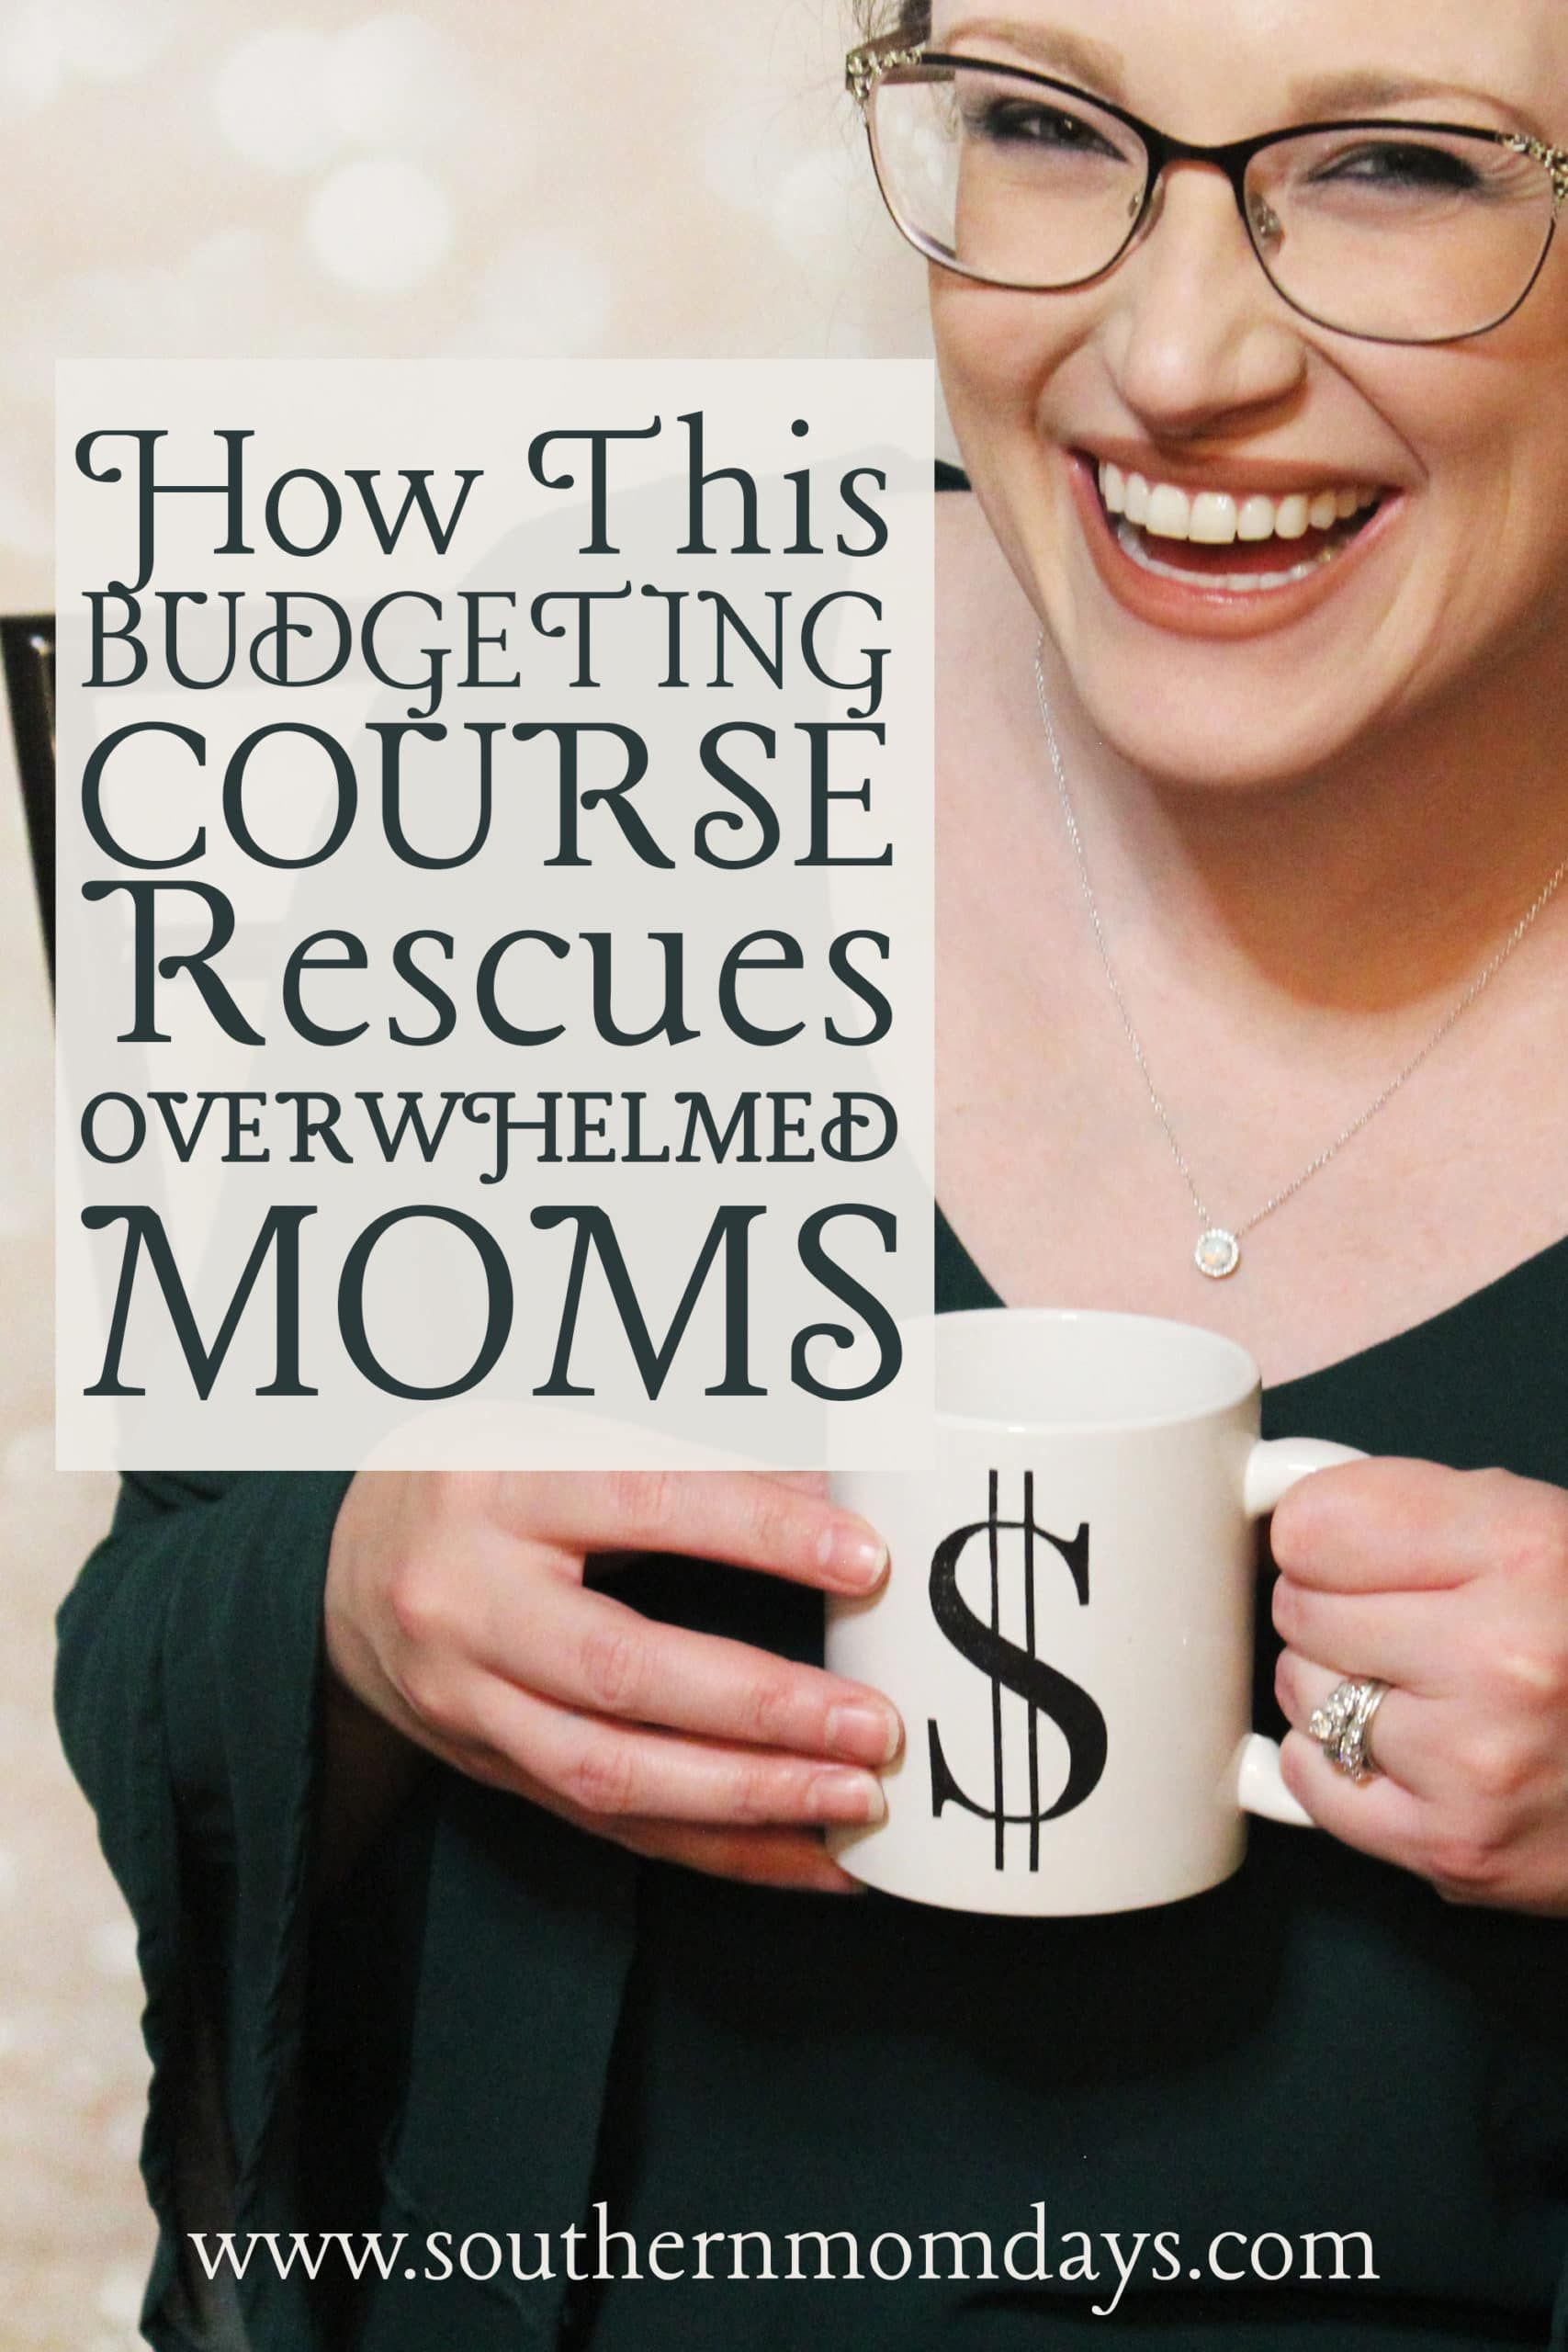 How This Budgeting Course Rescues Overwhelmed Moms